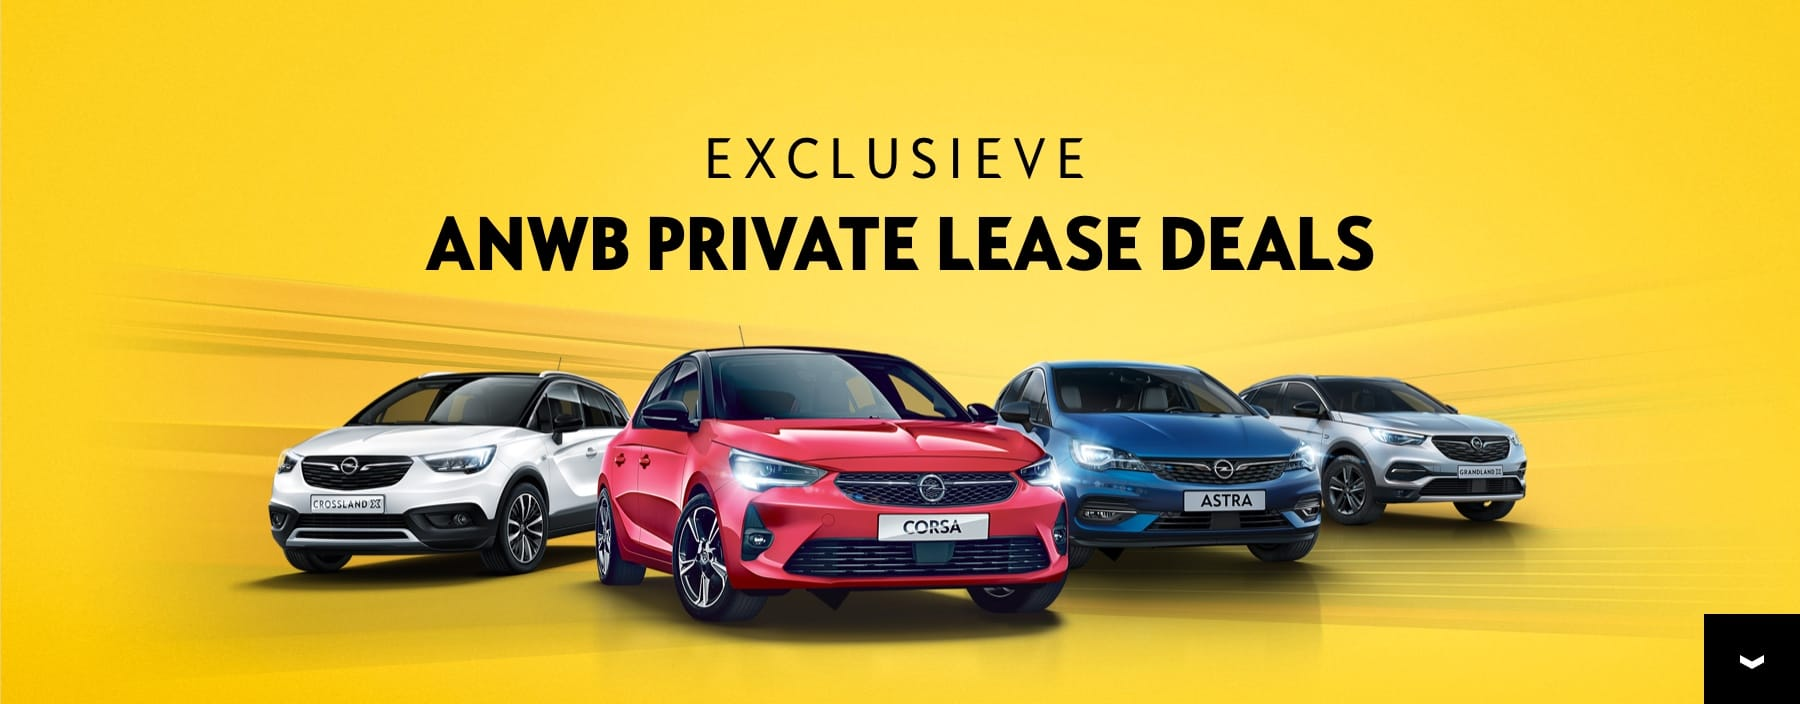 EXCLUSIEVE ANWB Private Lease Deals